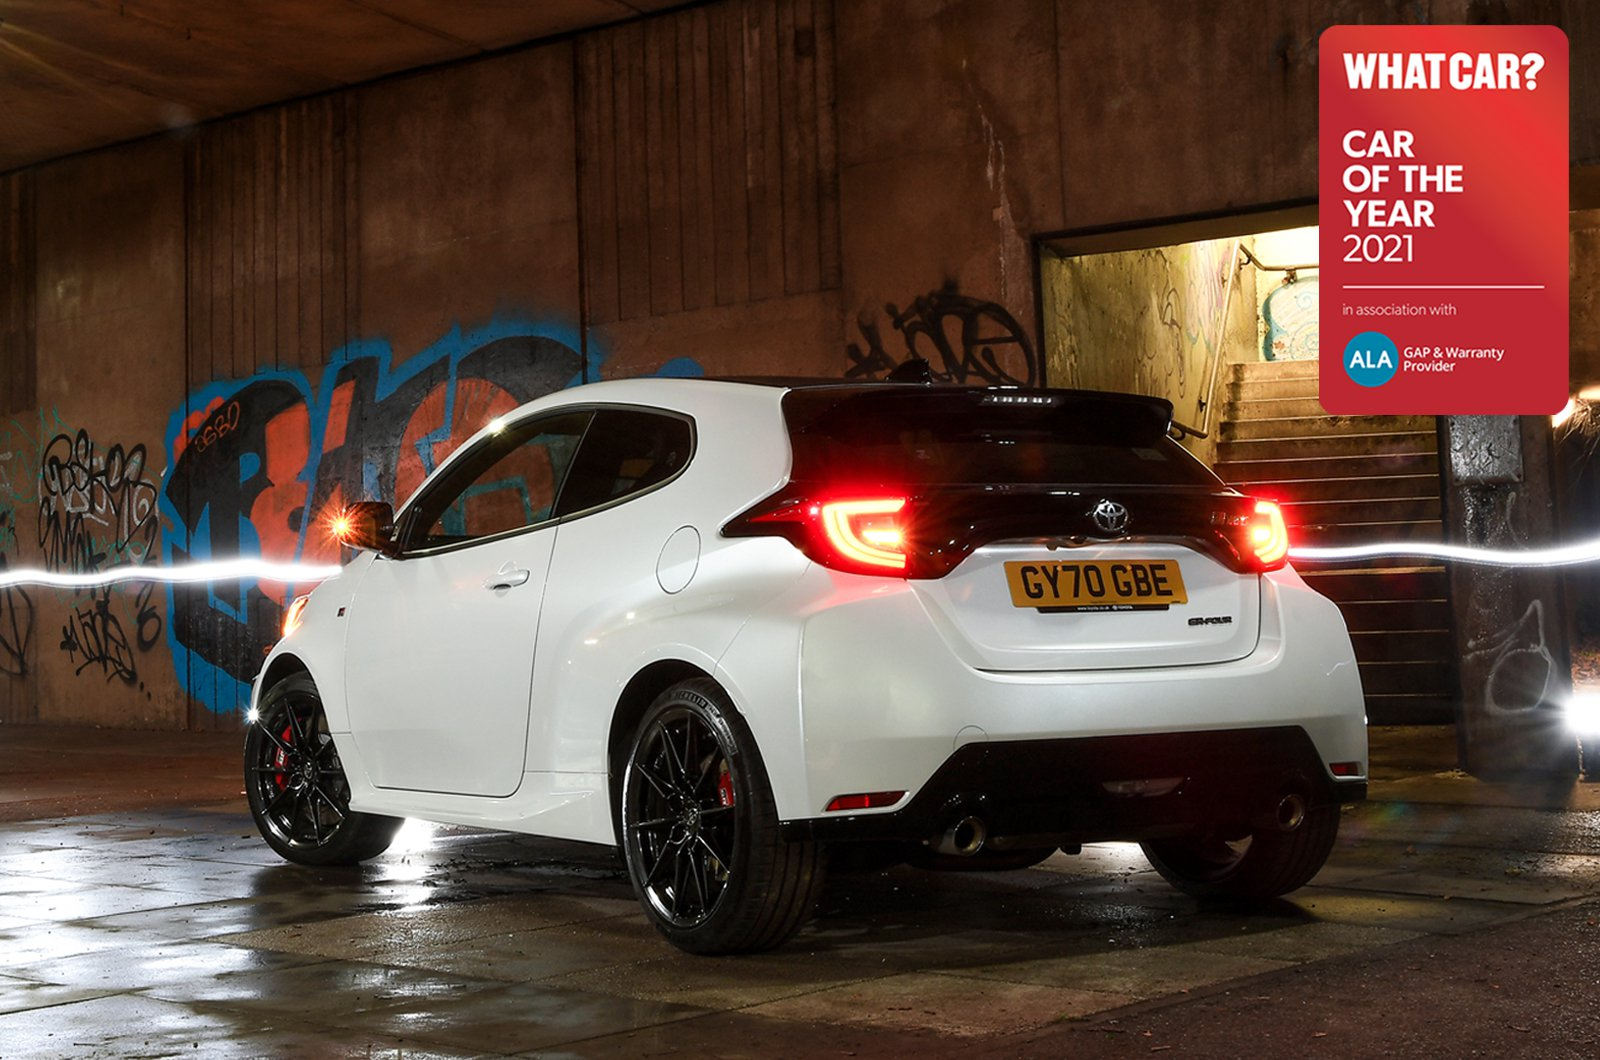 Hot Hatch of the Year 2021 - Toyota GR Yaris